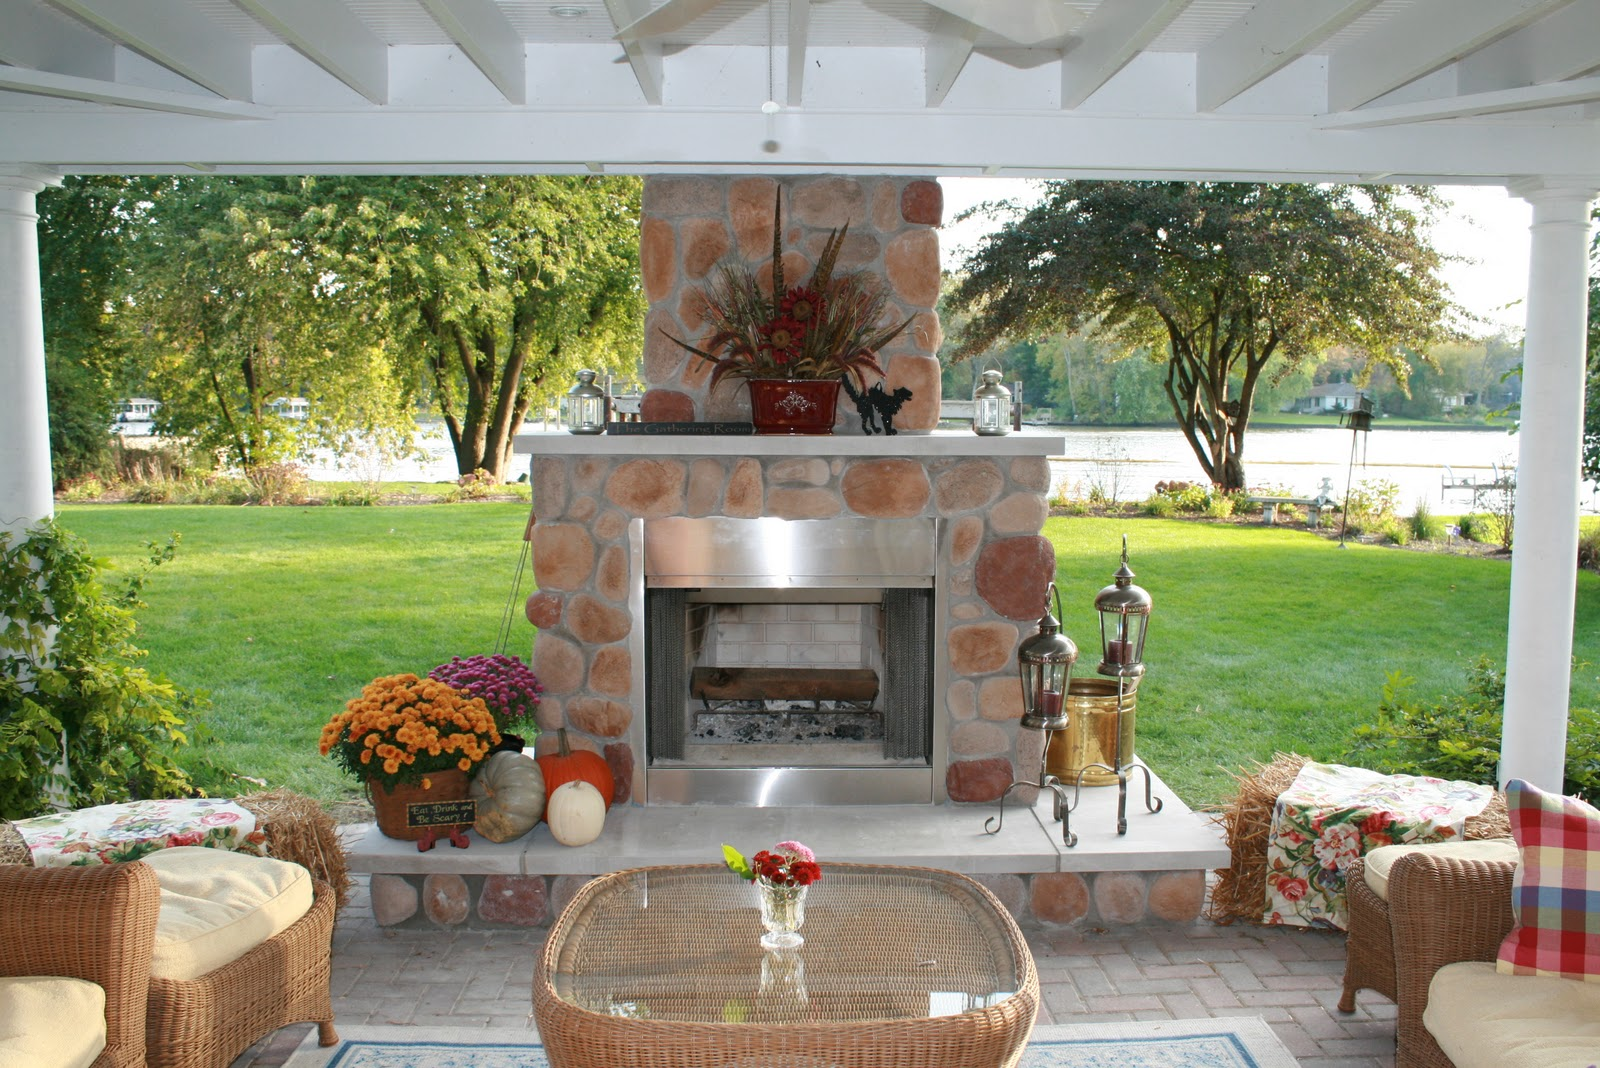 outdoor living room living large in a small house because our home is so small we put a roof on our open outdoor pergola we added a pre fab wood burning fireplace some outdoor furniture from home depot